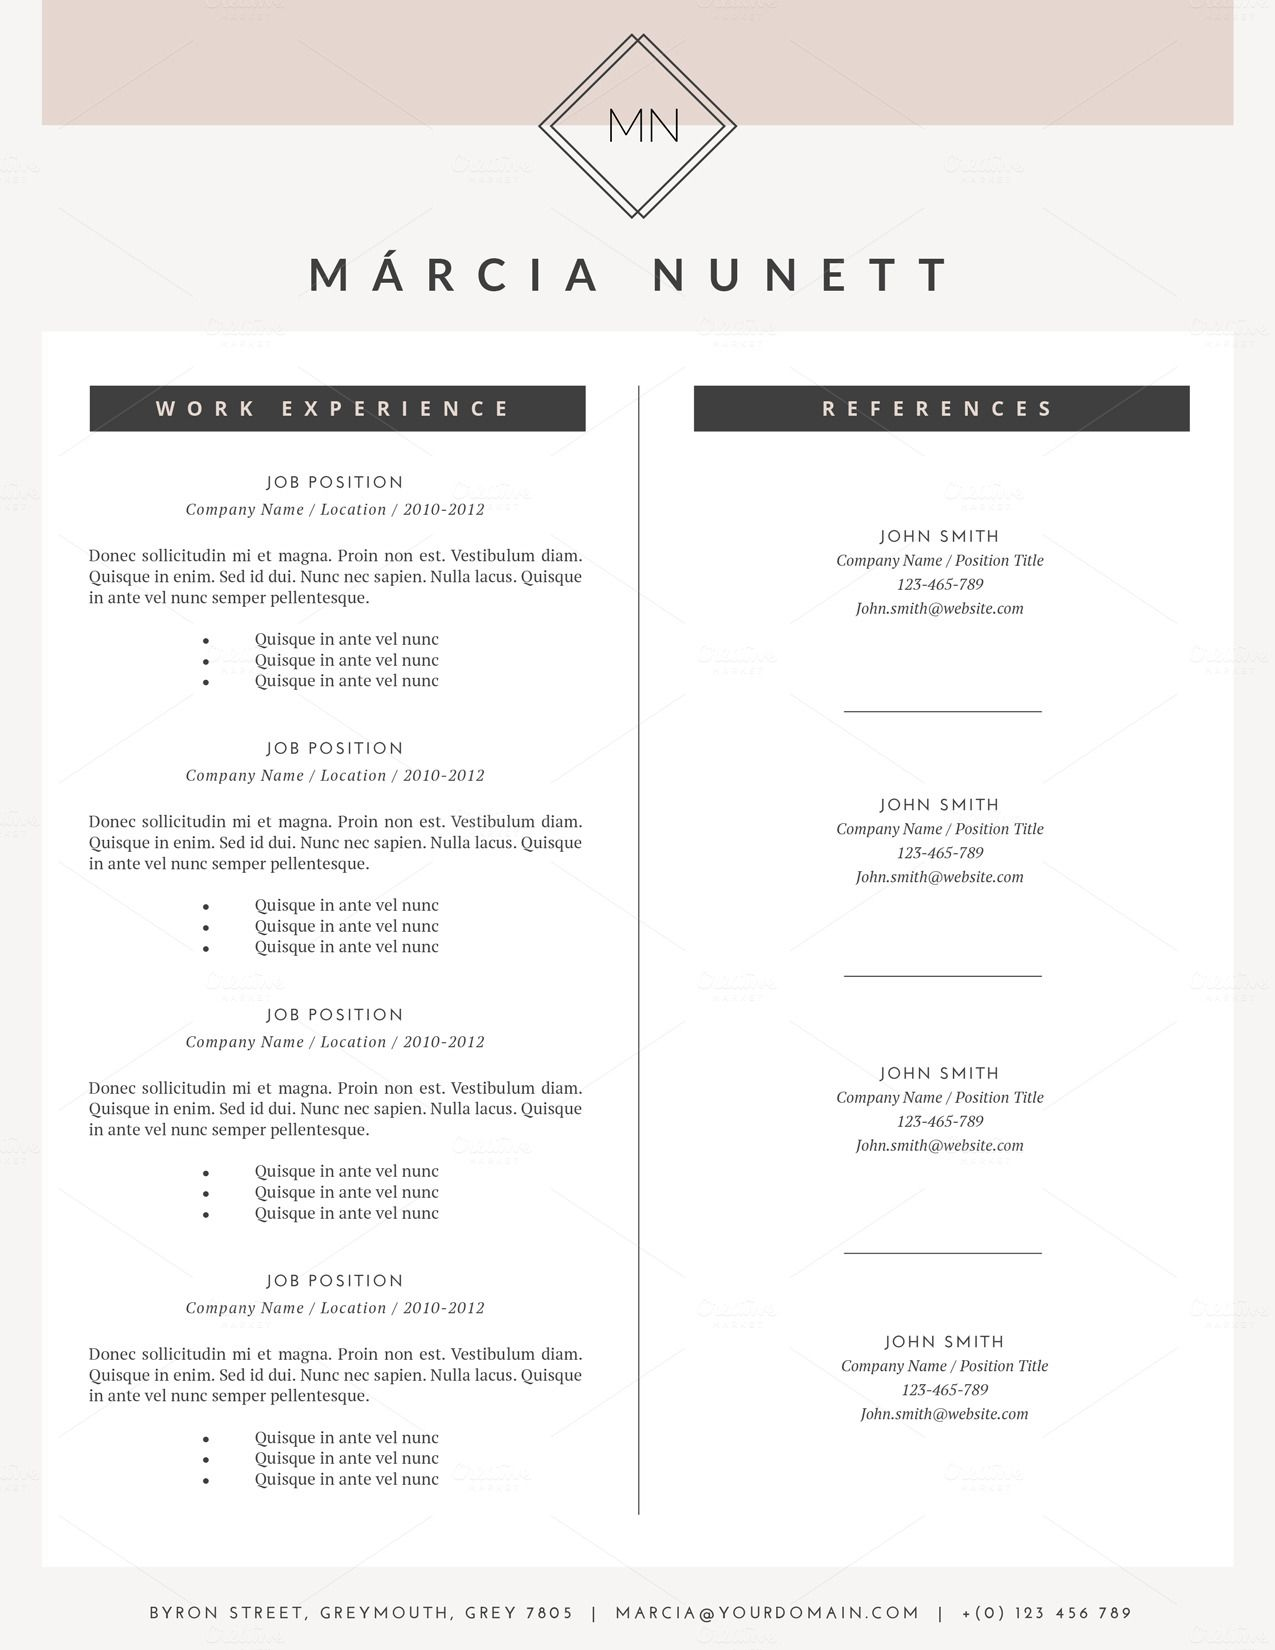 Word 2010 Resume Template Hipster Resume Template For Wordthis Paper Fox On Creative